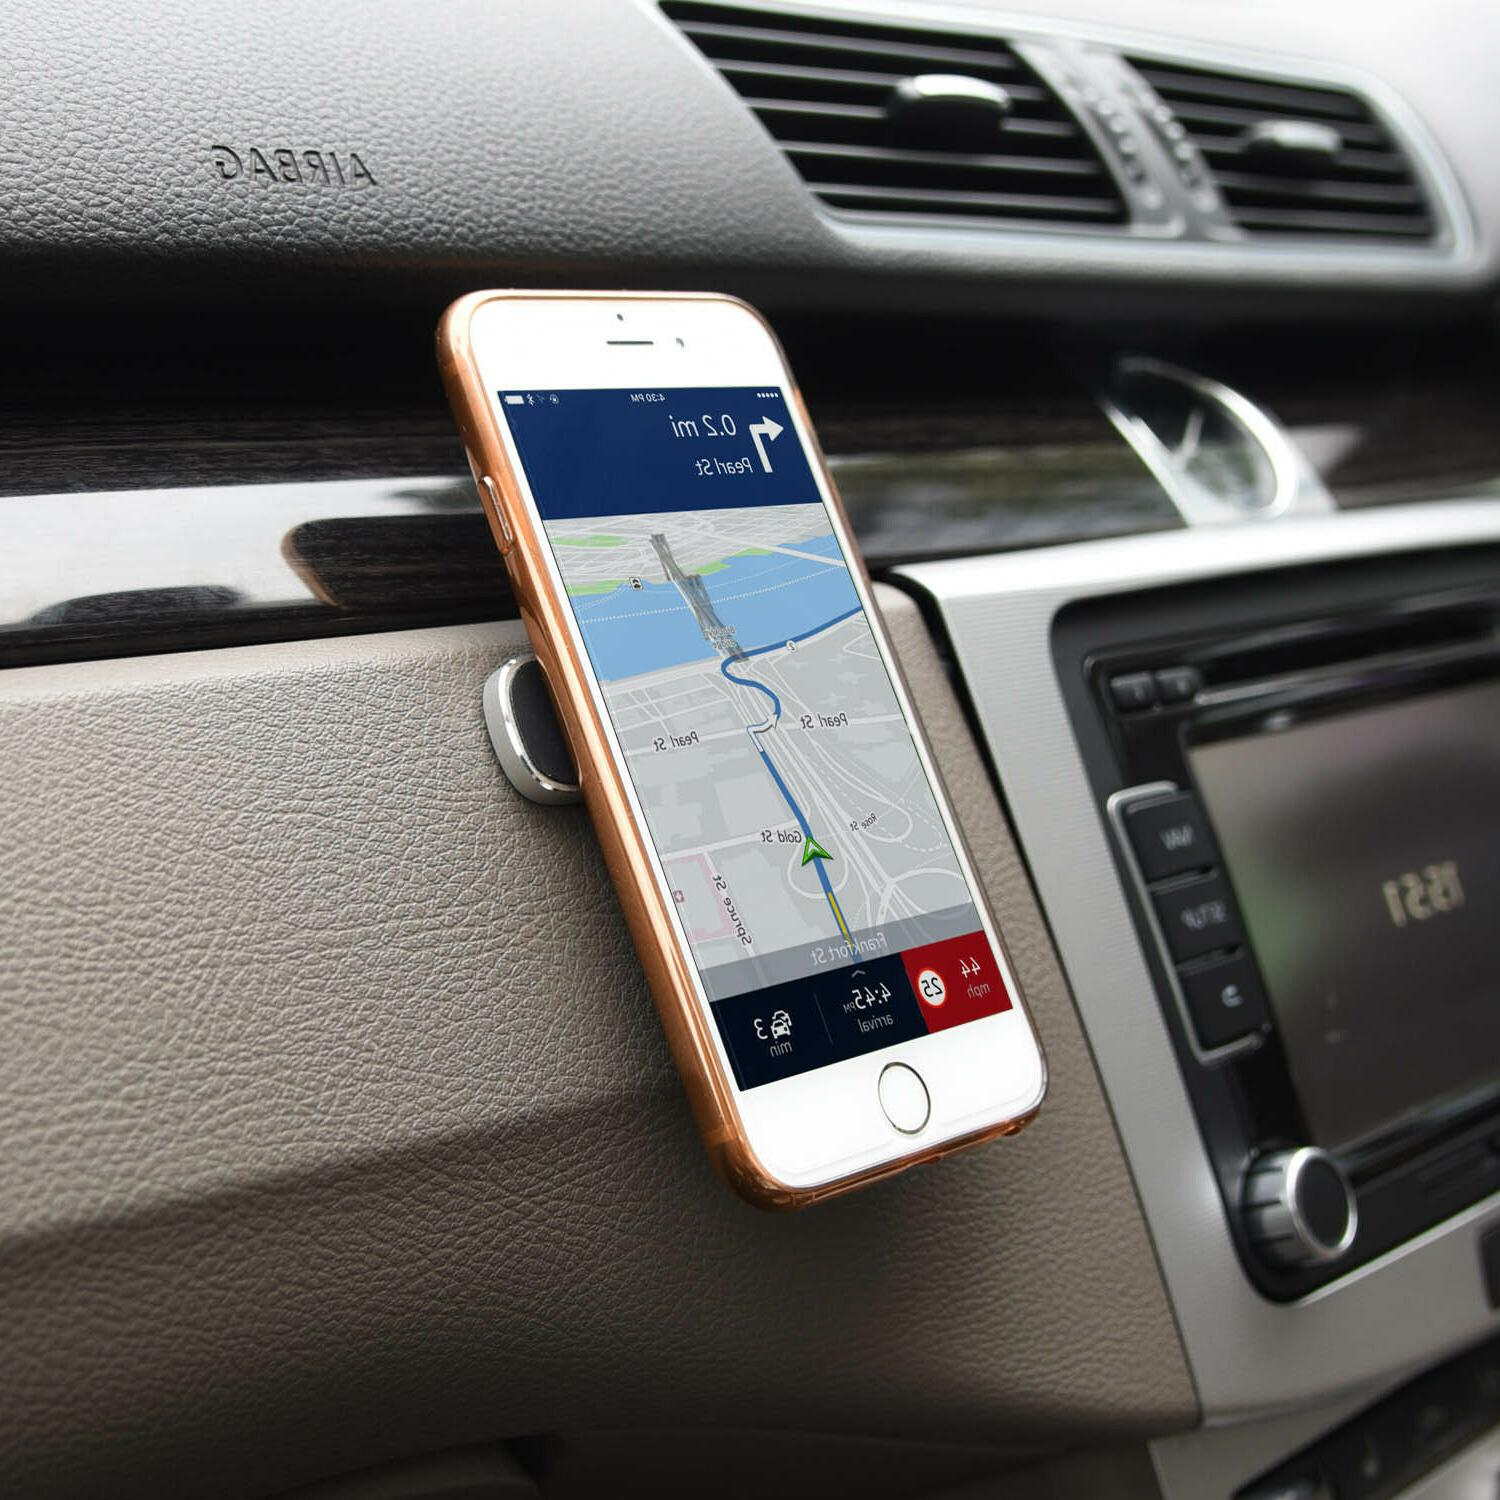 Delfy Car Mount Dashboard strong for iPhone